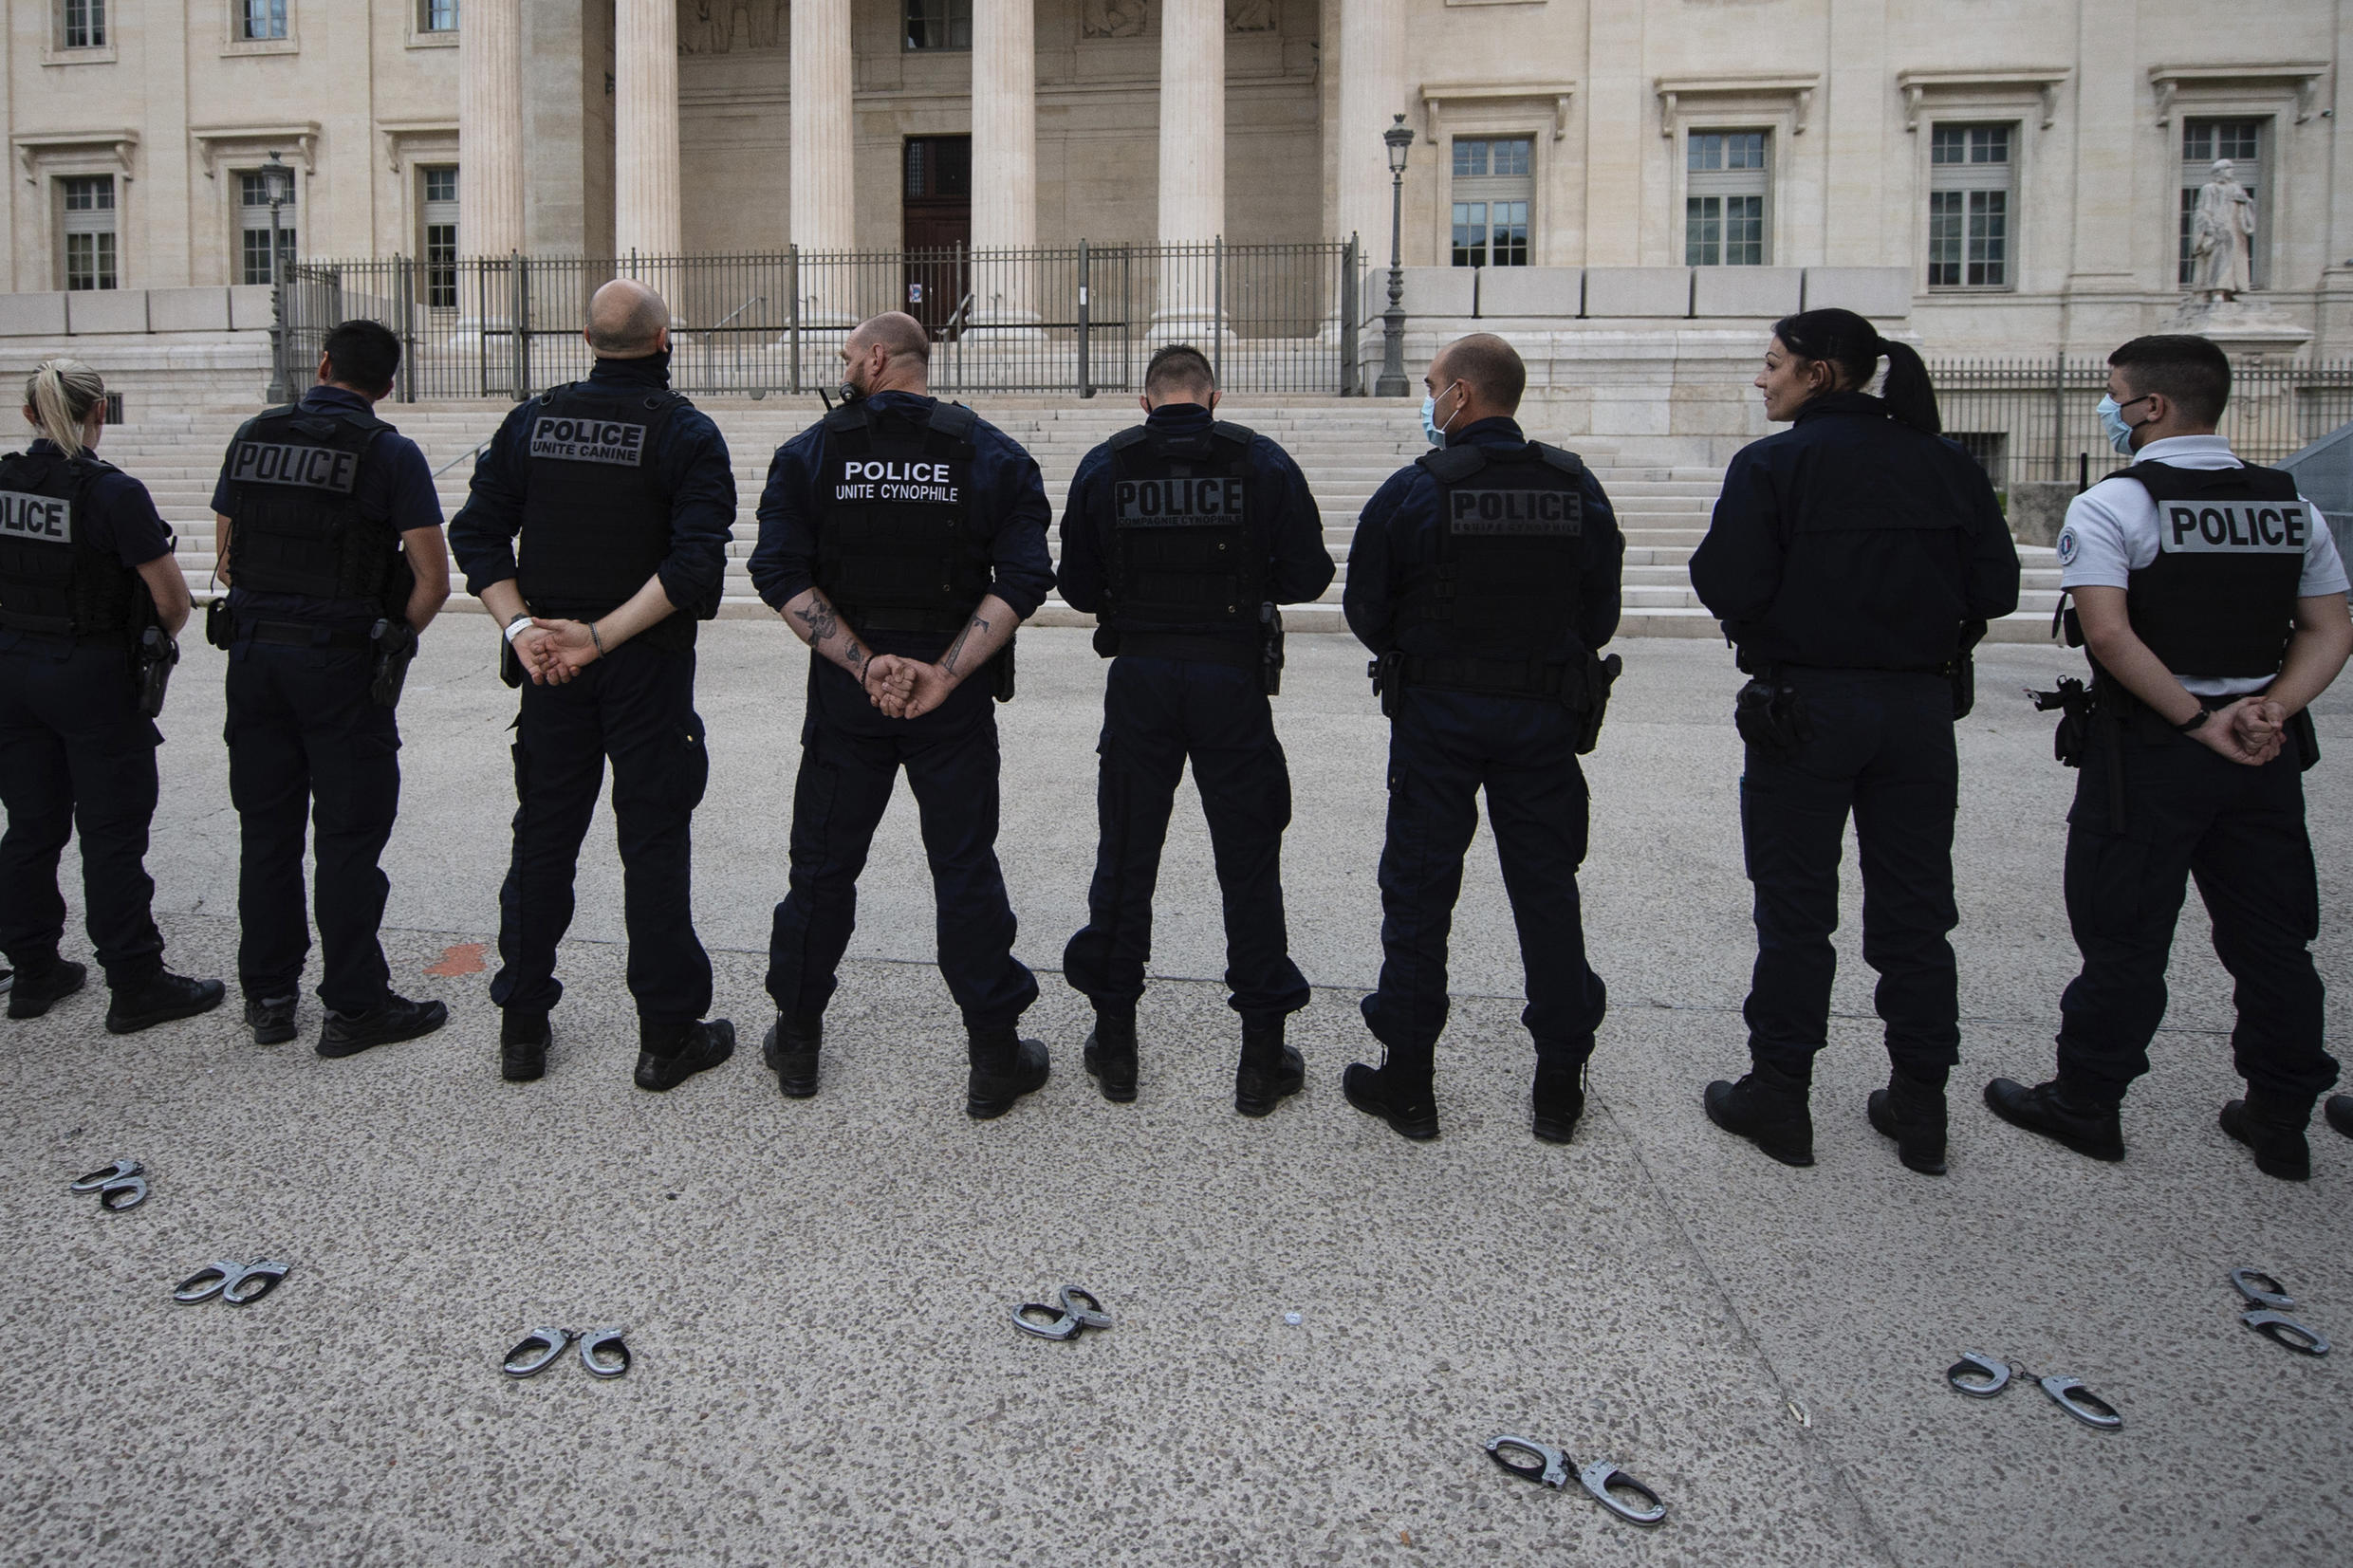 110620 french police protest handcuffs